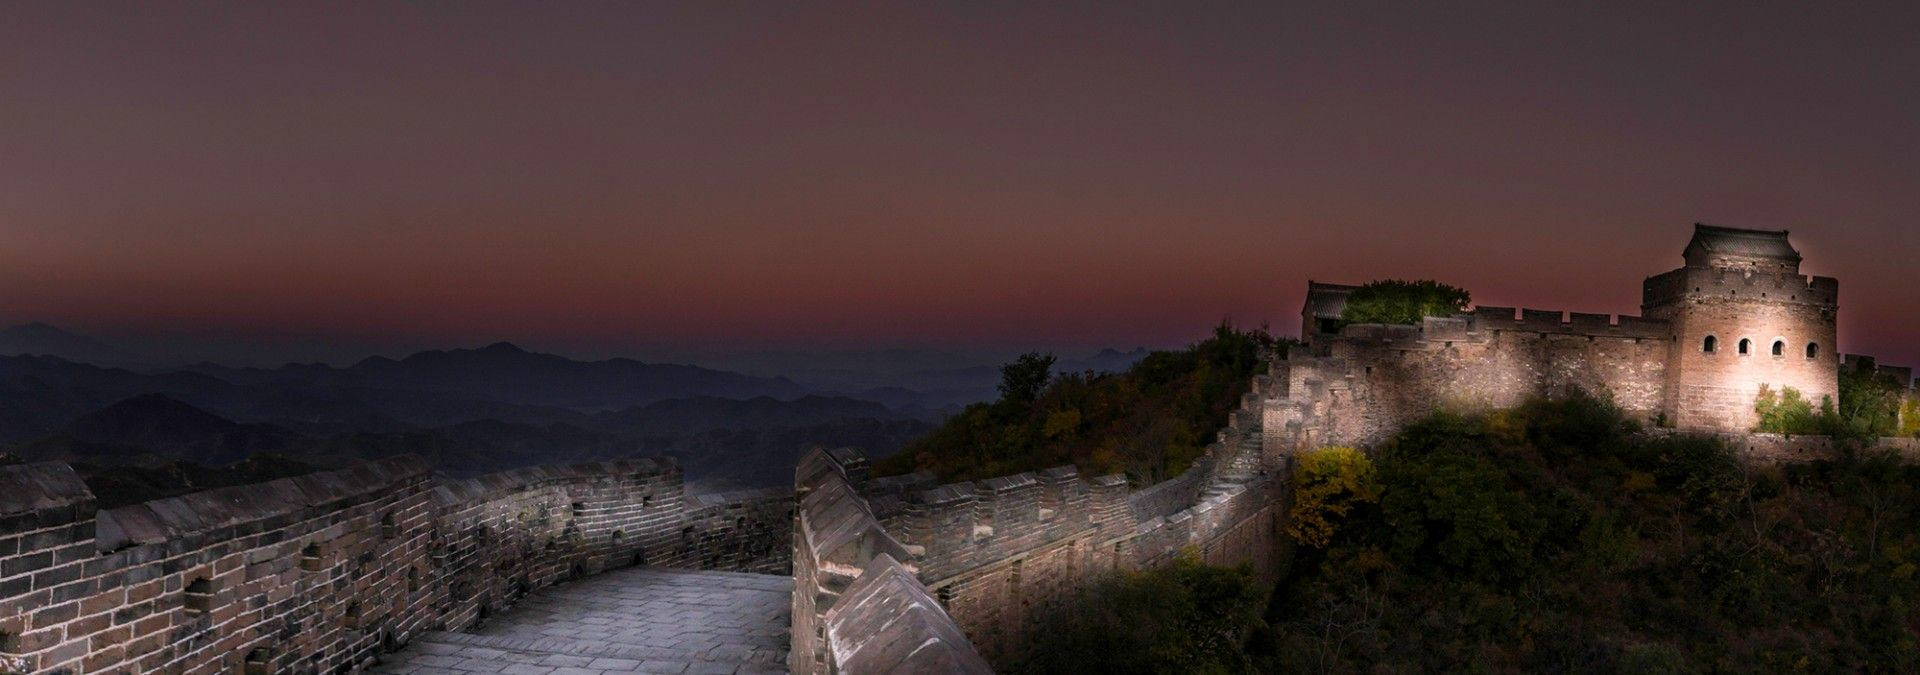 1478602504-1477310321-1477309171-great_wall_of_china_evening_vistajpg.jpg